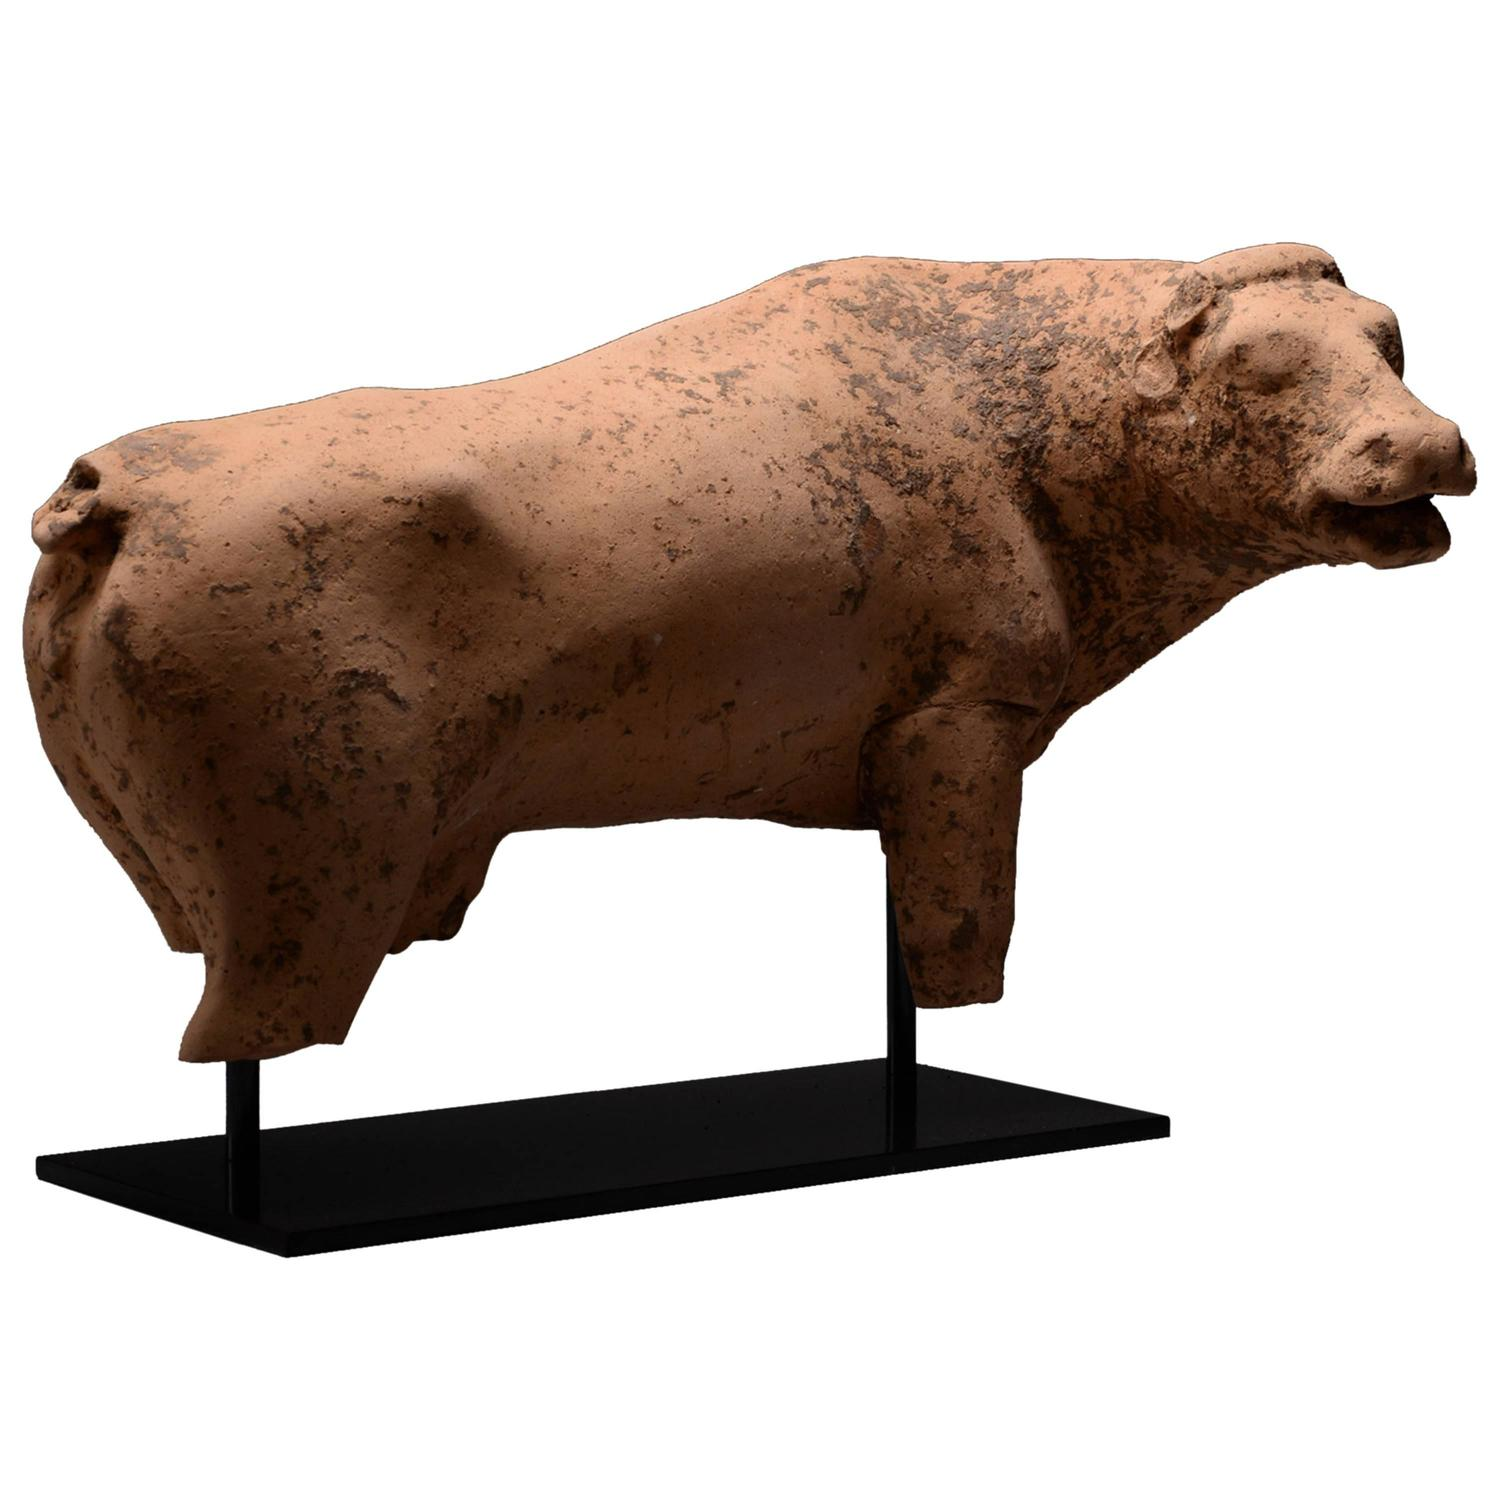 Ancient Greek Statues For Sale Ancient Greek Terracotta Cow Sculpture 450 Bc For Sale